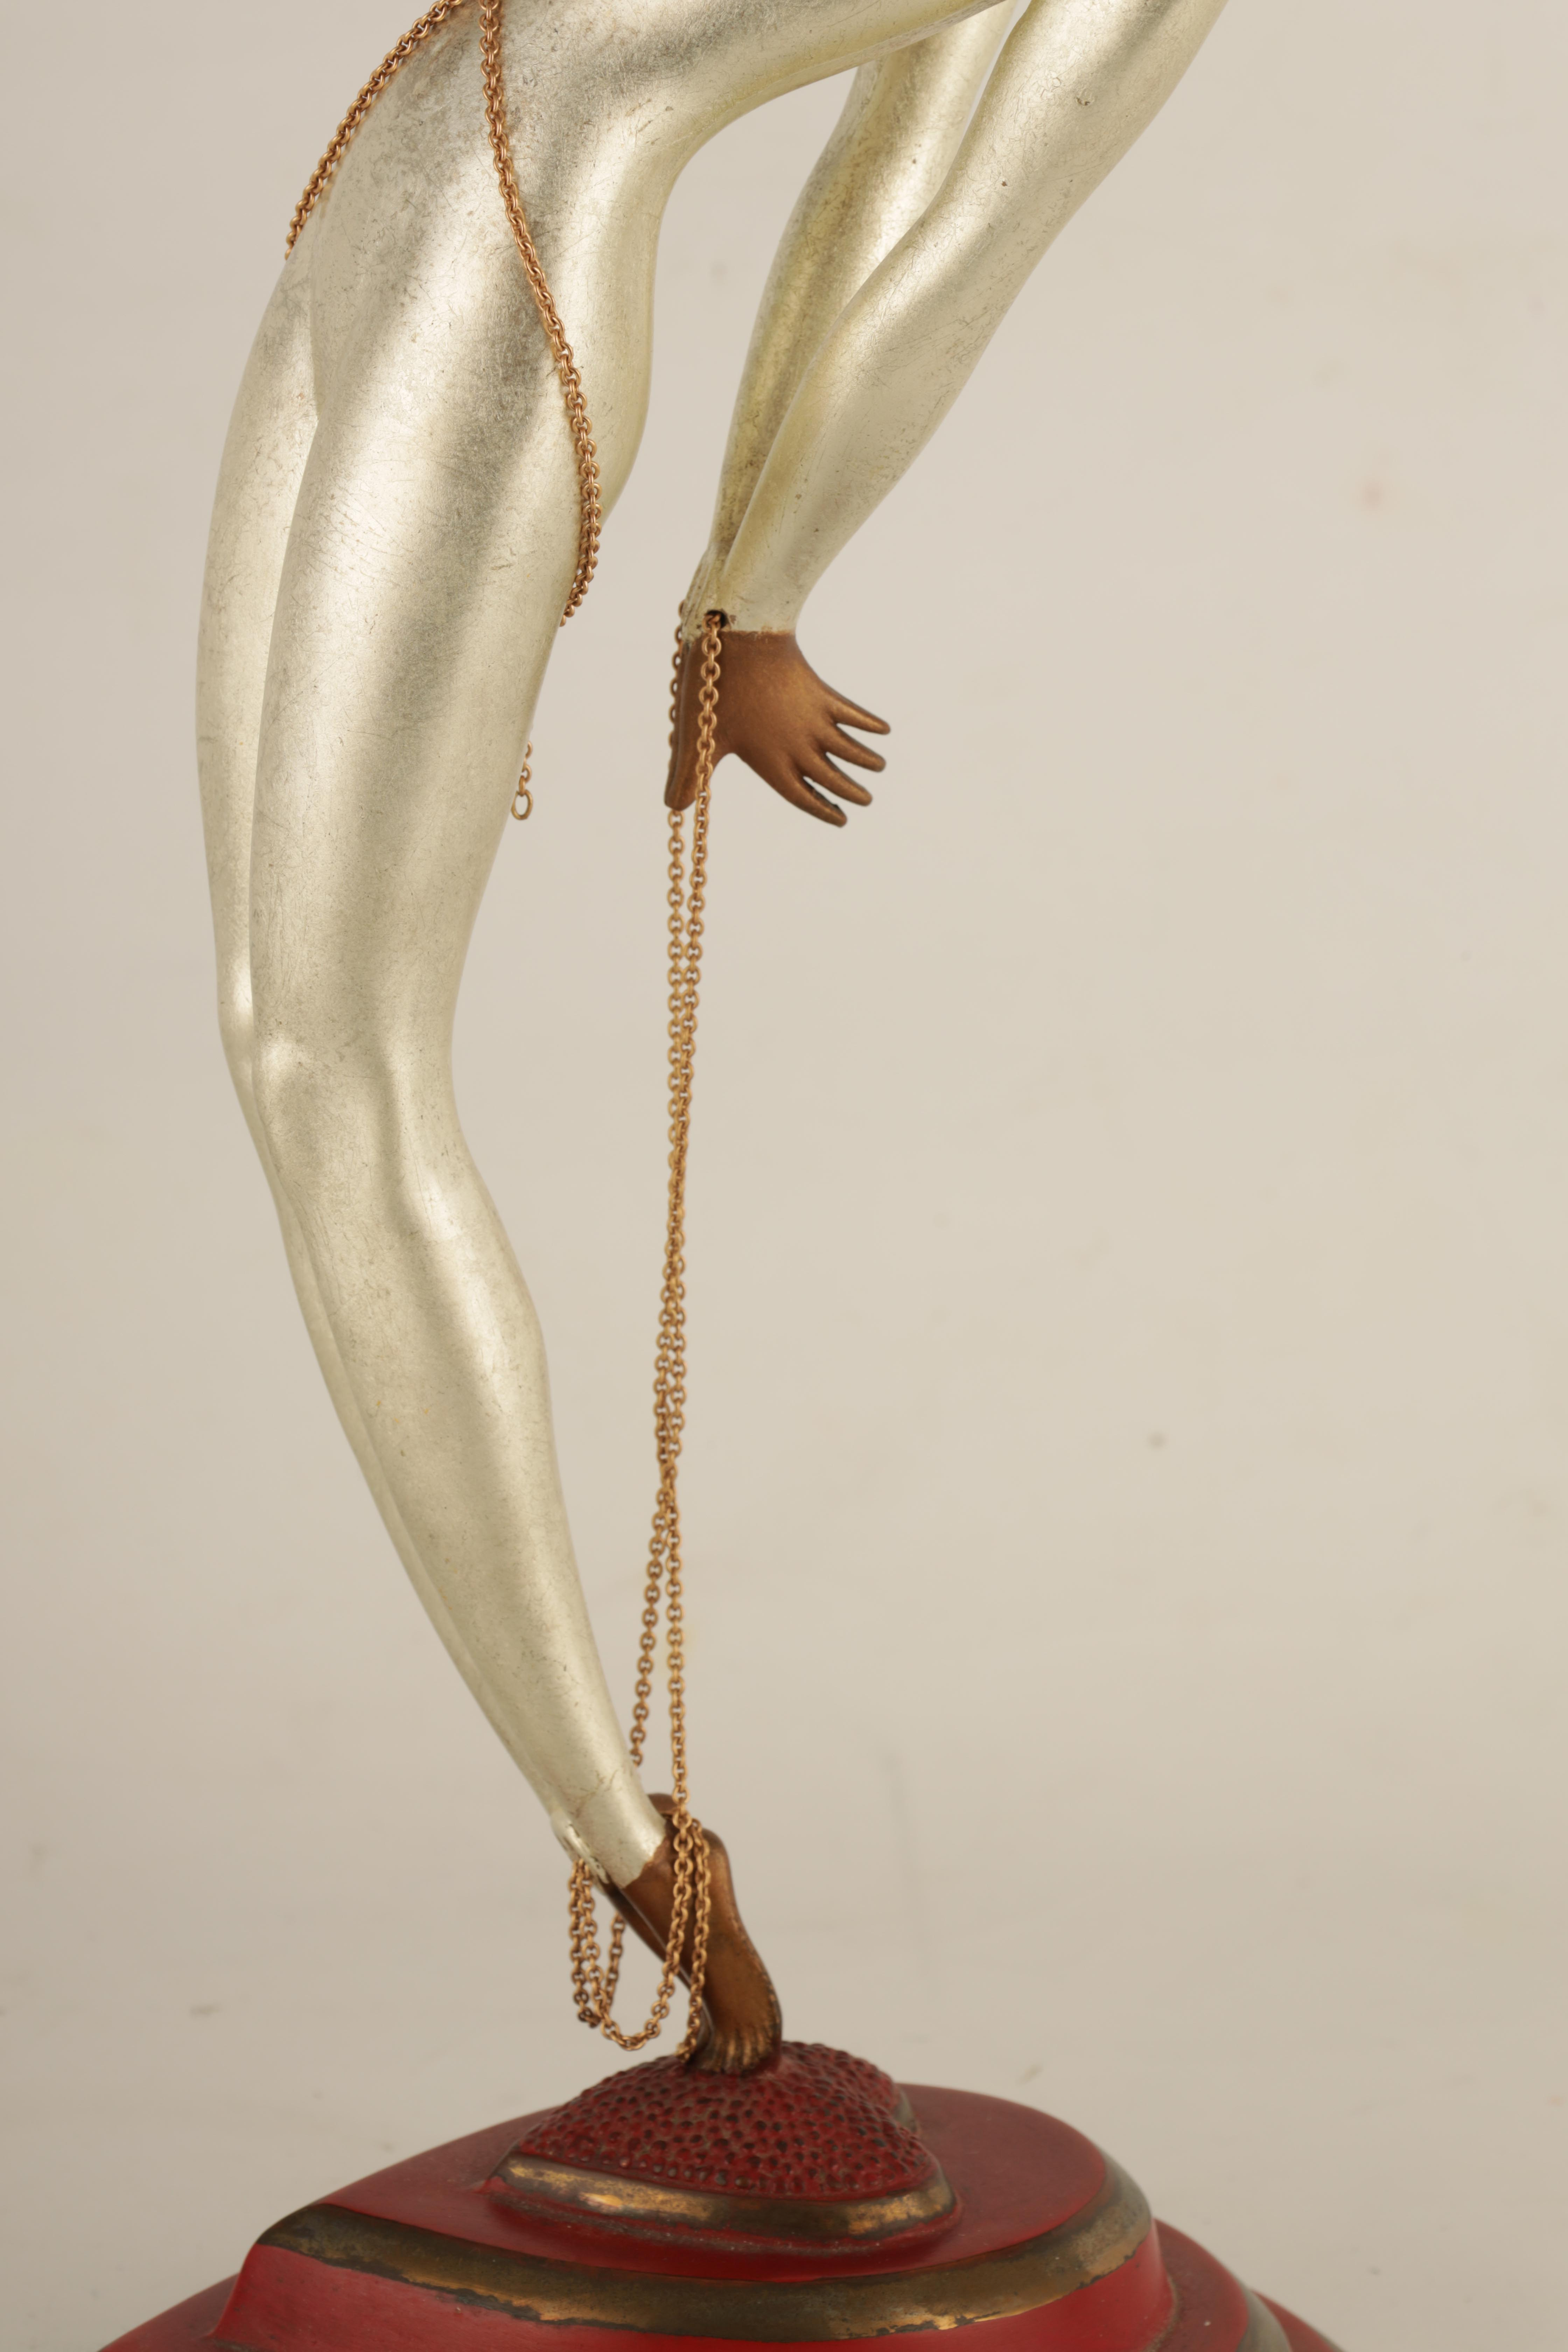 ROMAIN DE TIRTOFF. RUSSIAN 1892-1990. A 20TH CENTURY RUSSIAN LIMITED EDITION COLD PAINTED BRONZE - Image 5 of 11